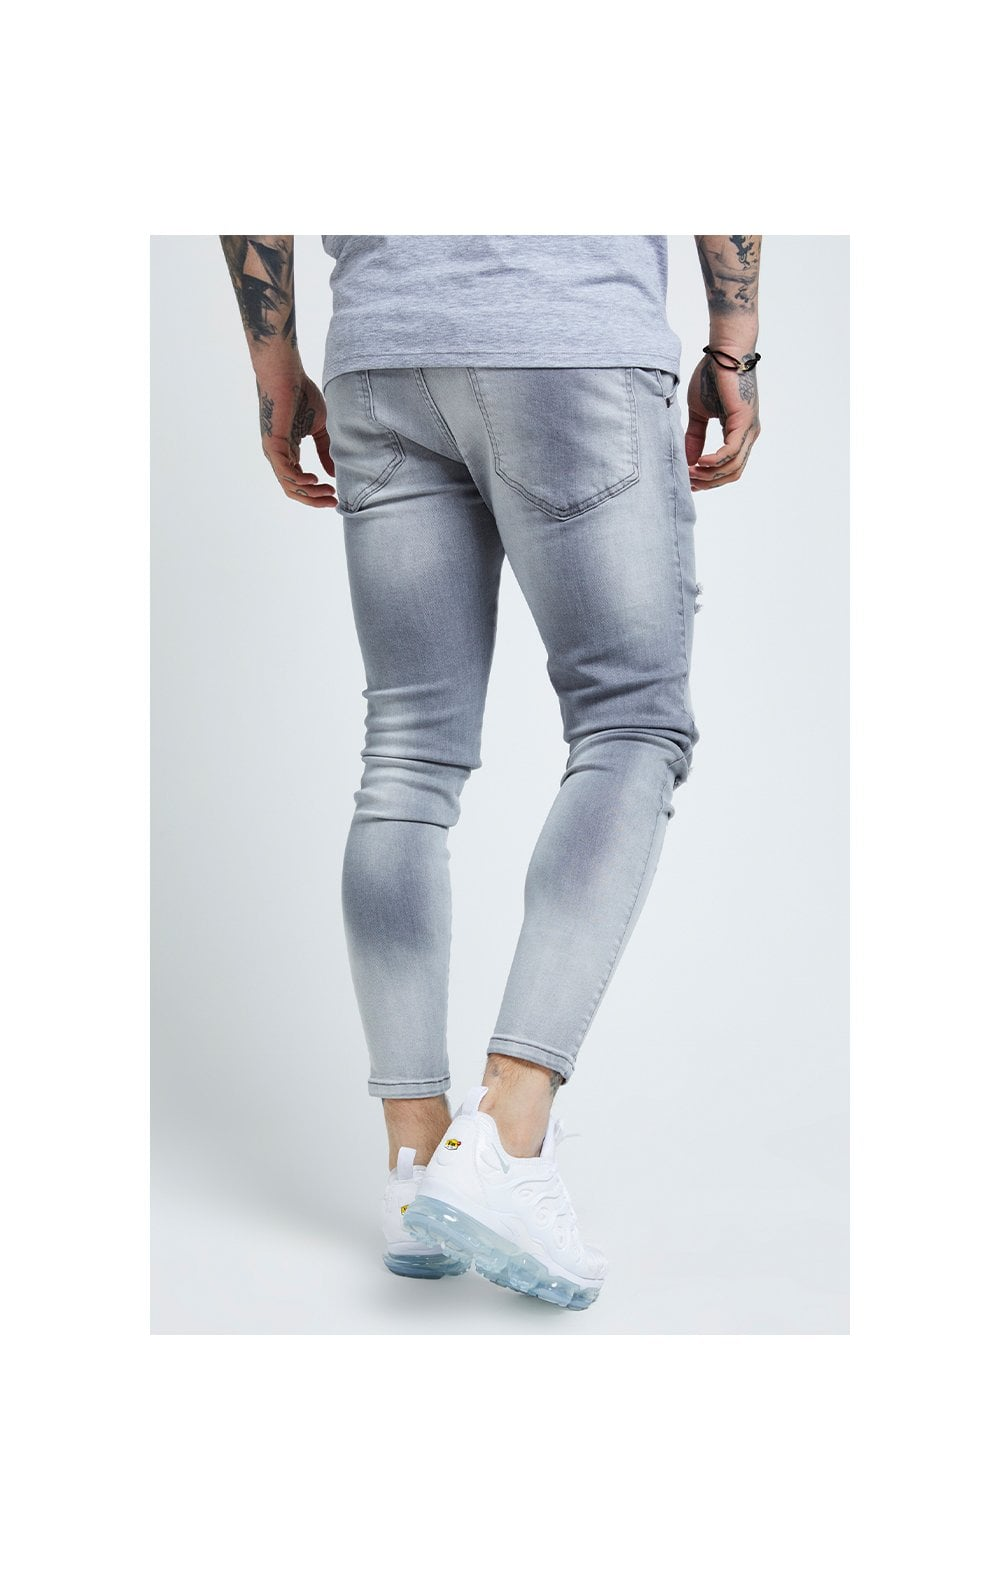 SikSilk Distressed Skinny Jeans – Washed Grey (2)